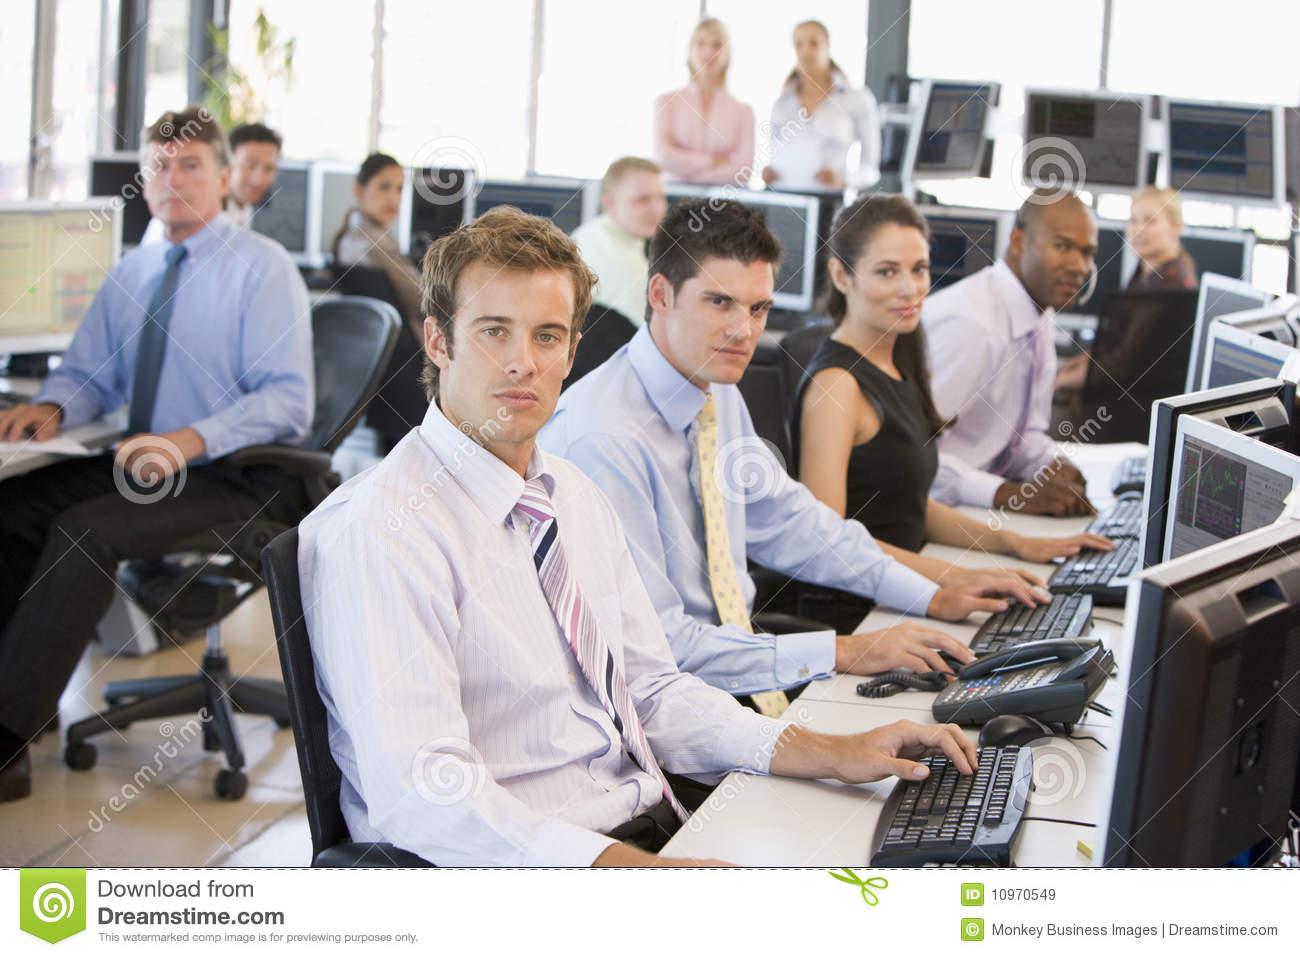 business at work royalty free stock photography view of busy stock traders office stock image image of 765